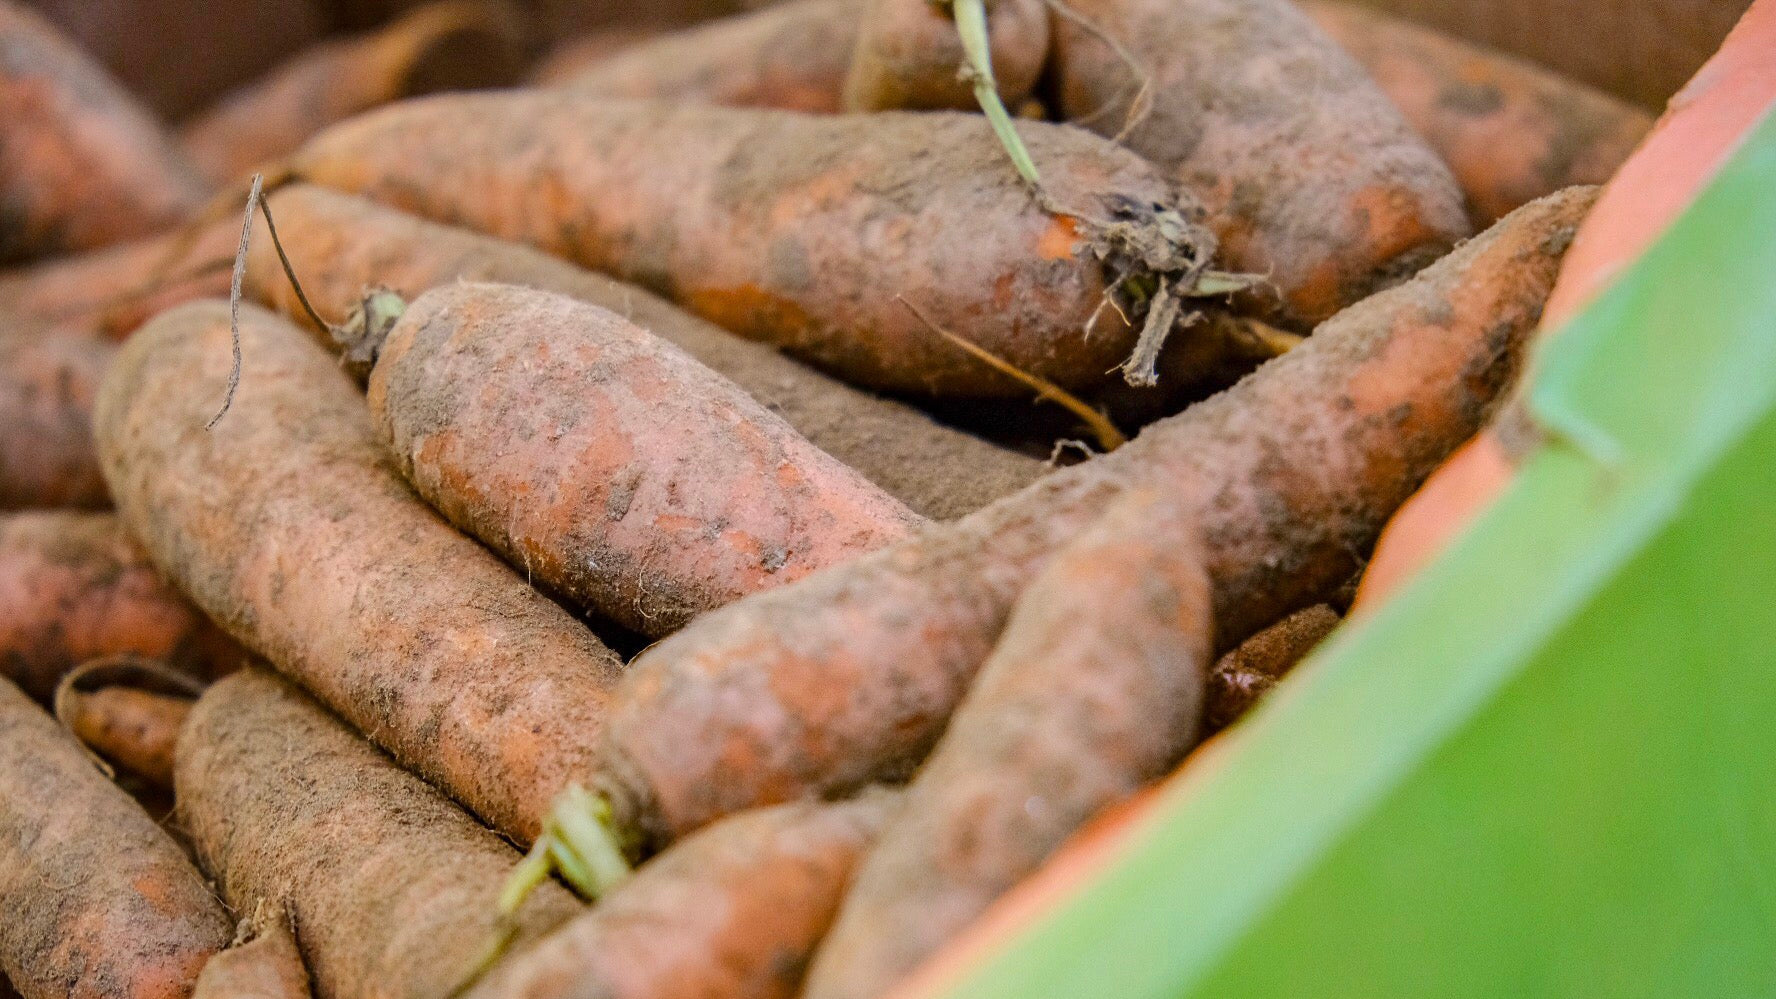 Organic Local Dirty Carrots from The Mart Farm Shop East Lothian Scotland